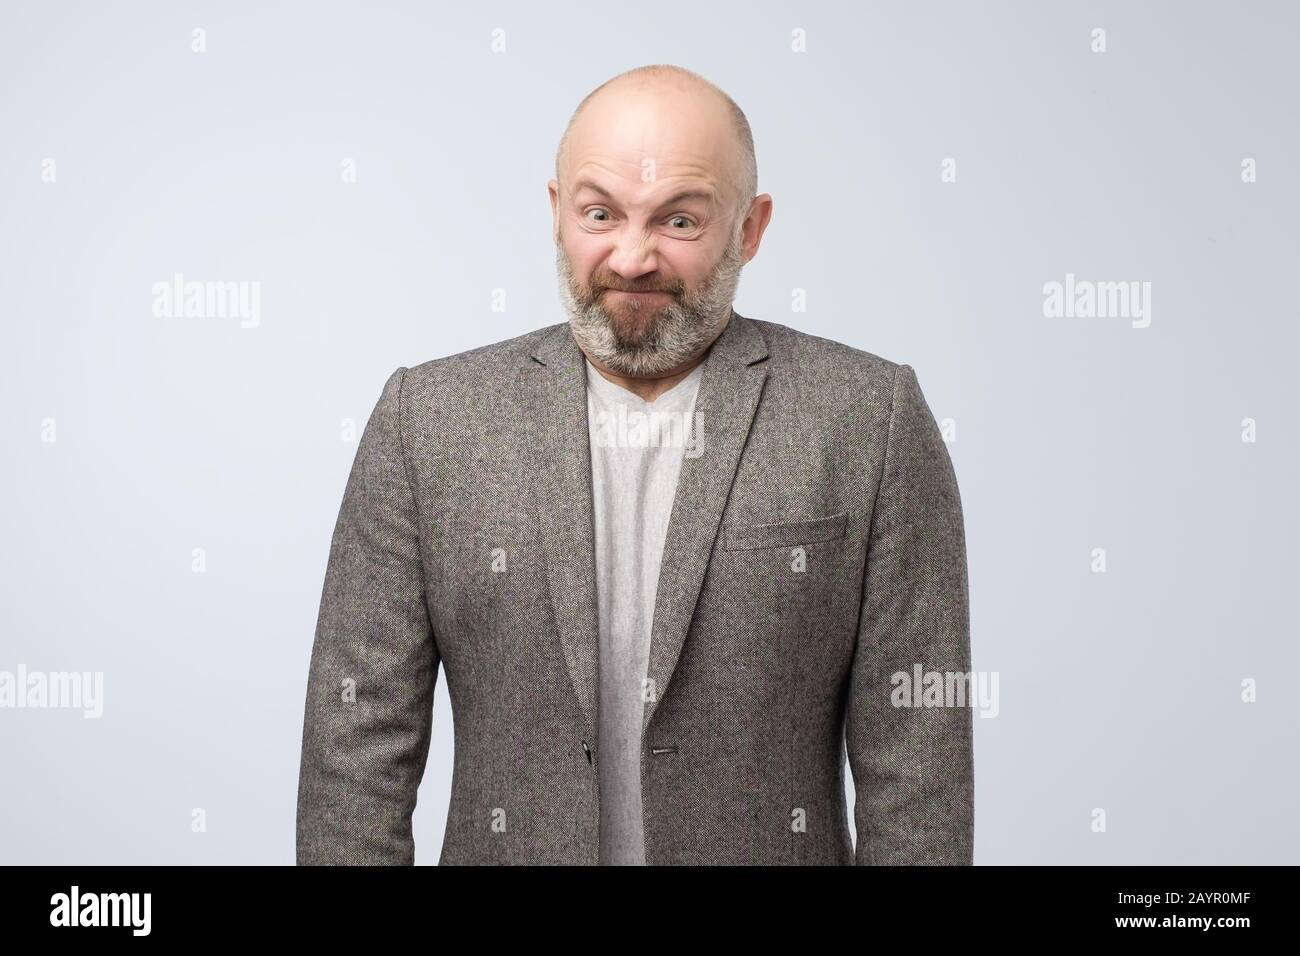 Angry caucasian man being furious losing his temper. Negative facial human emotion. Stock Photo